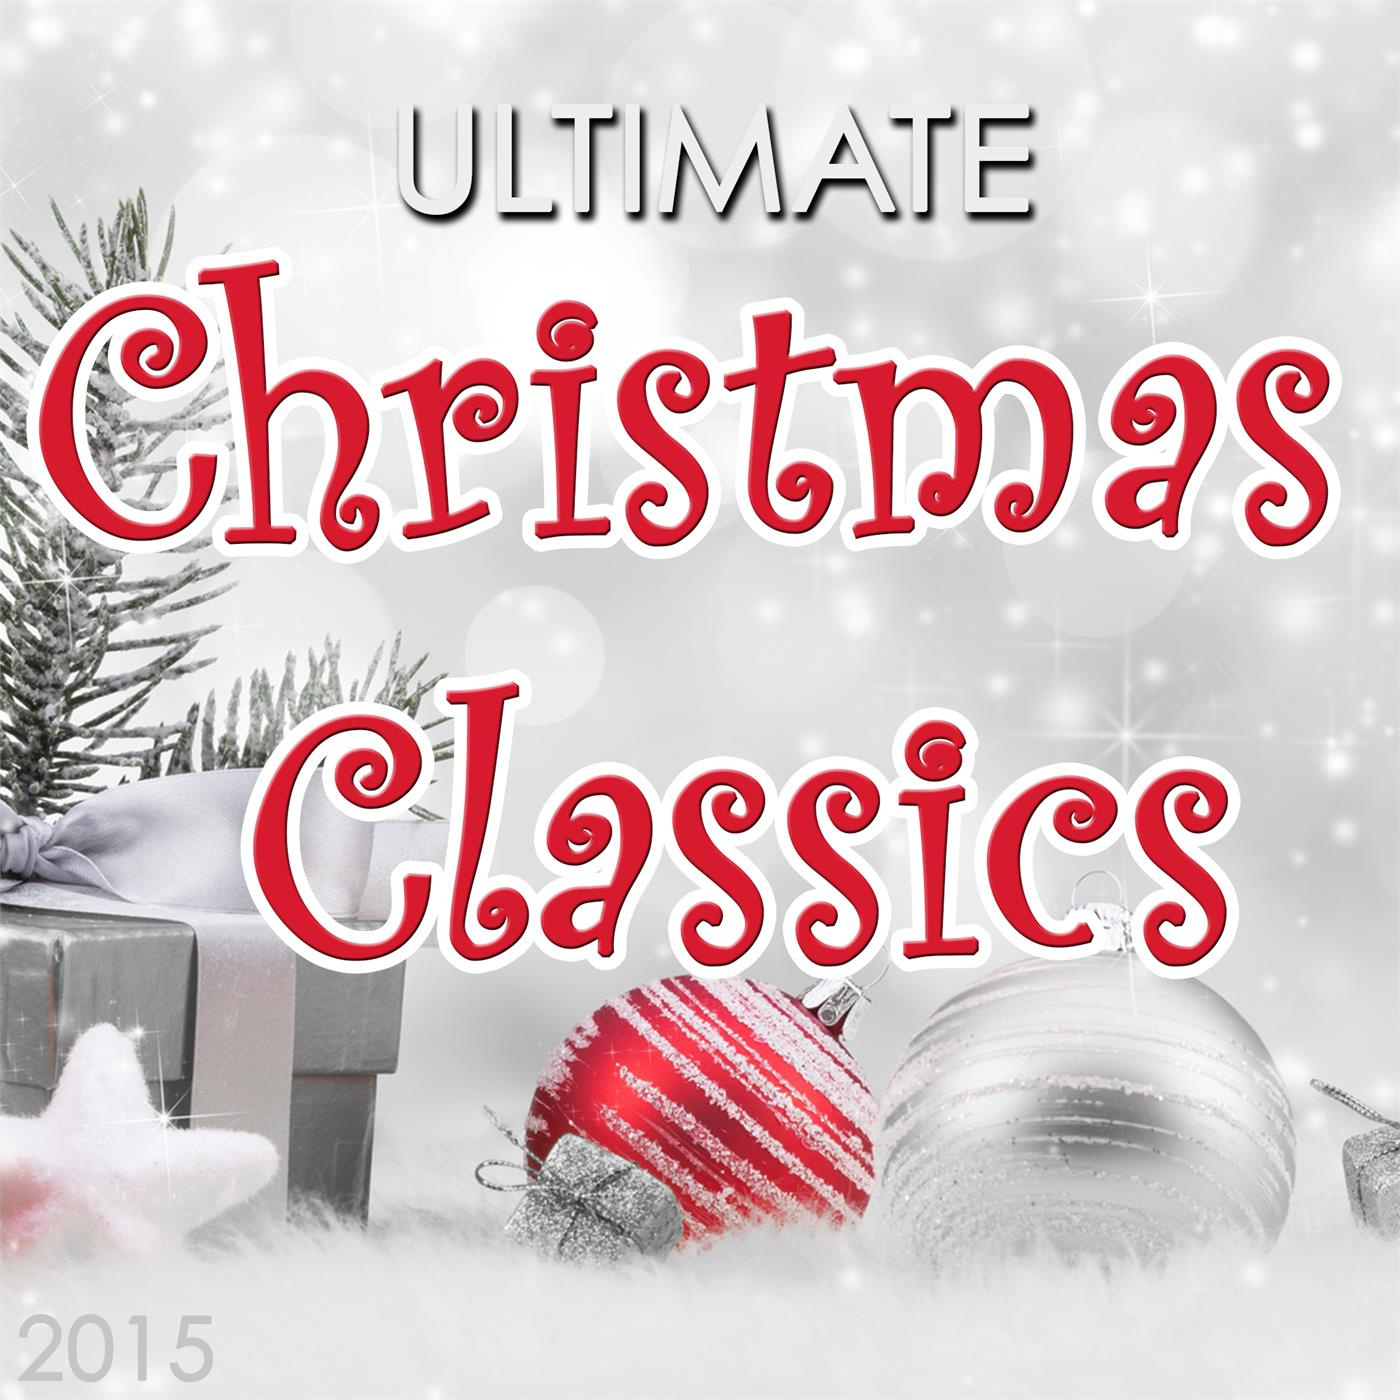 Ultimate Christmas Classics | Record Union